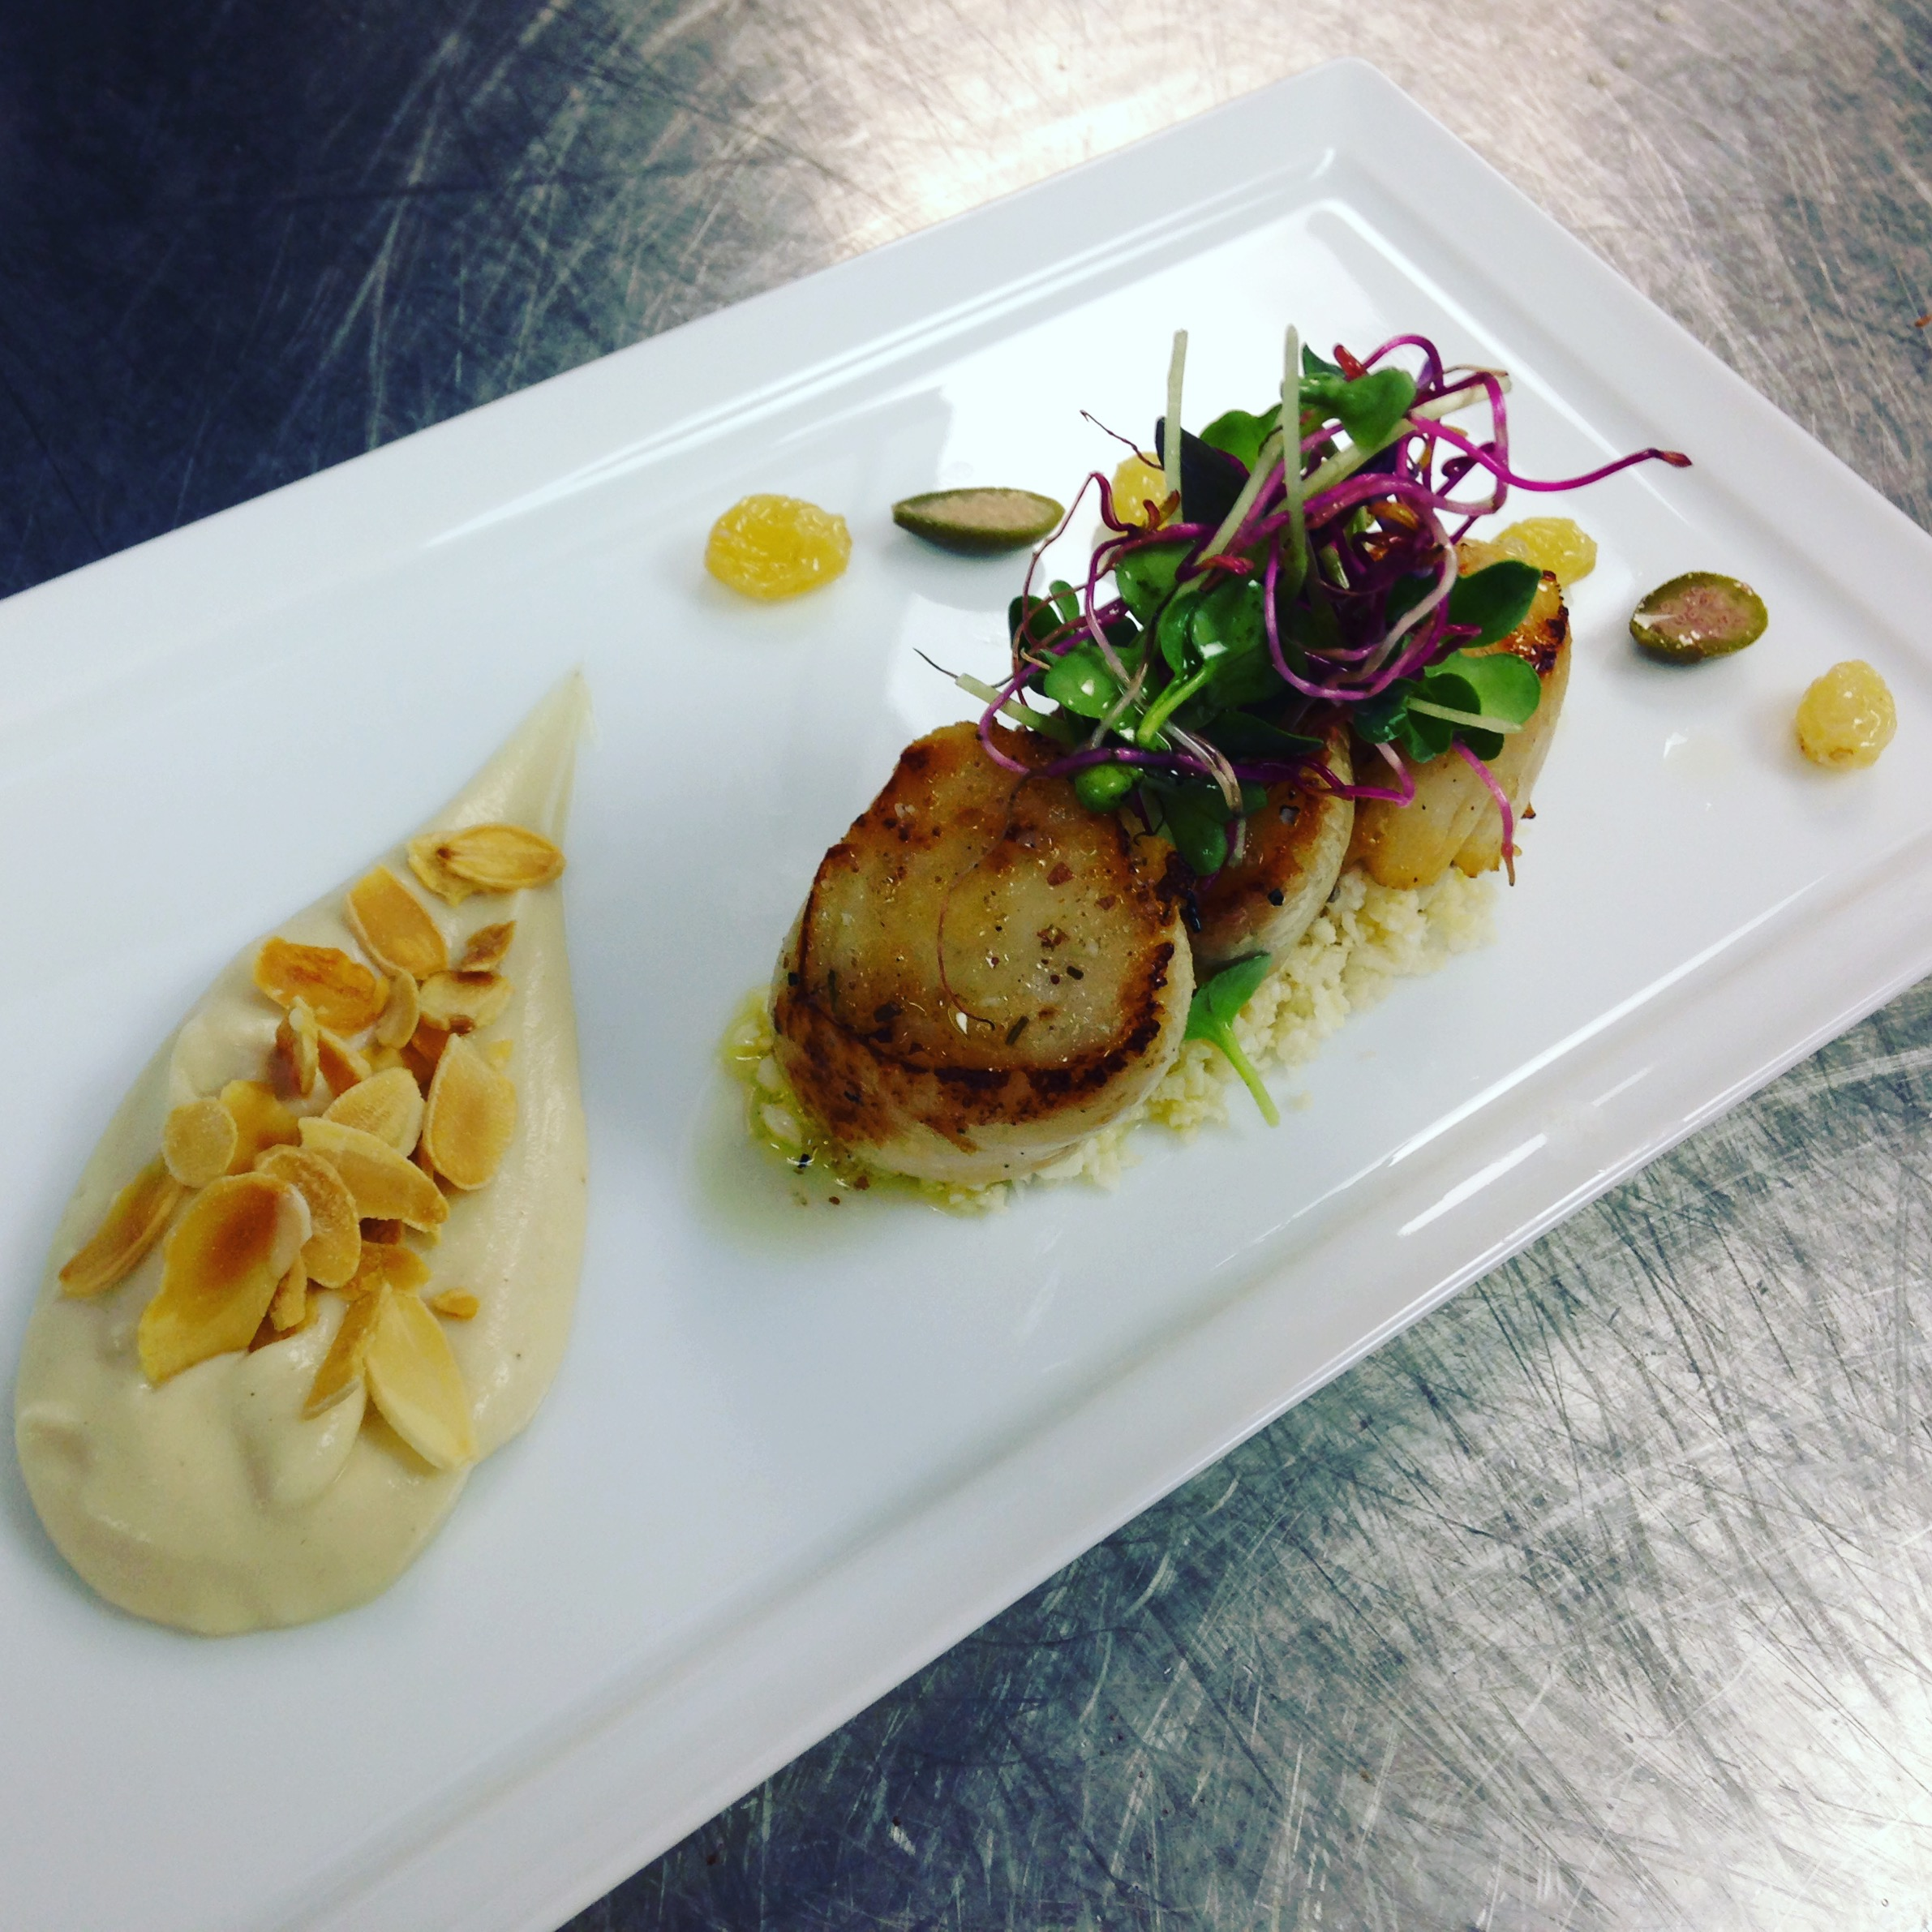 Scallops, cauliflower, almonds